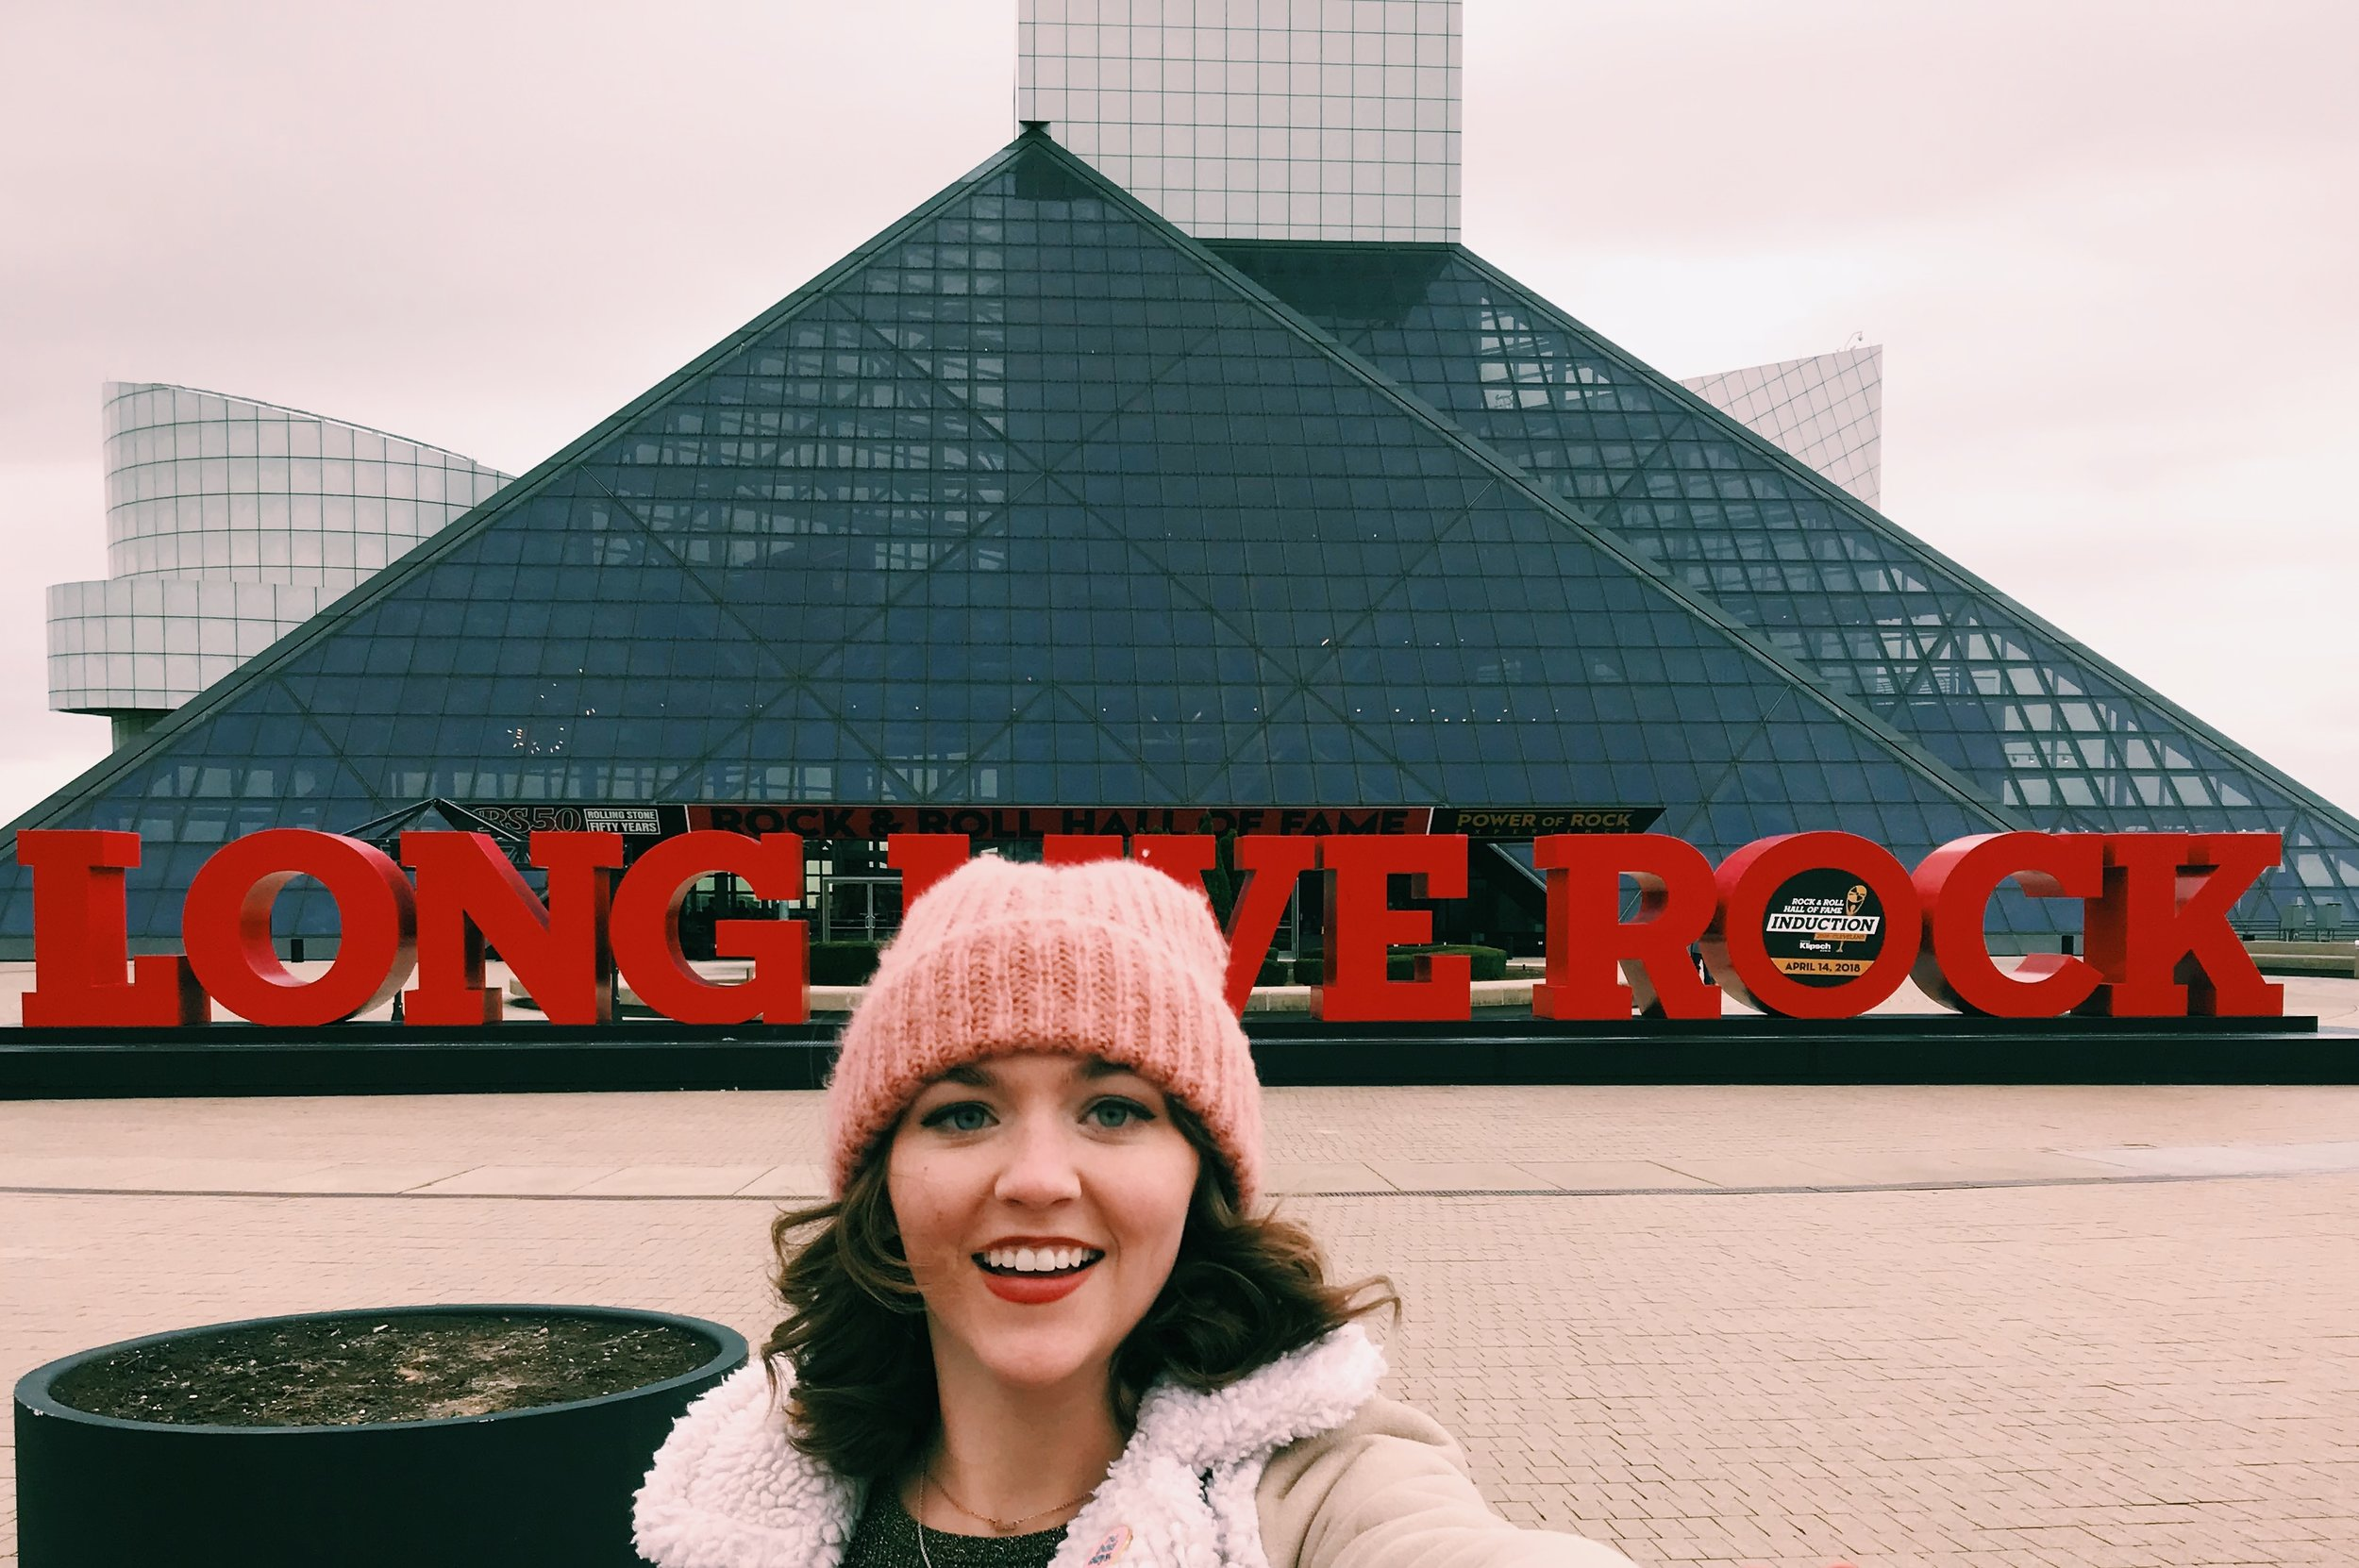 Don't Knock The Rock - I spent about 14 hours at the Rock and Roll Hall of Fame.